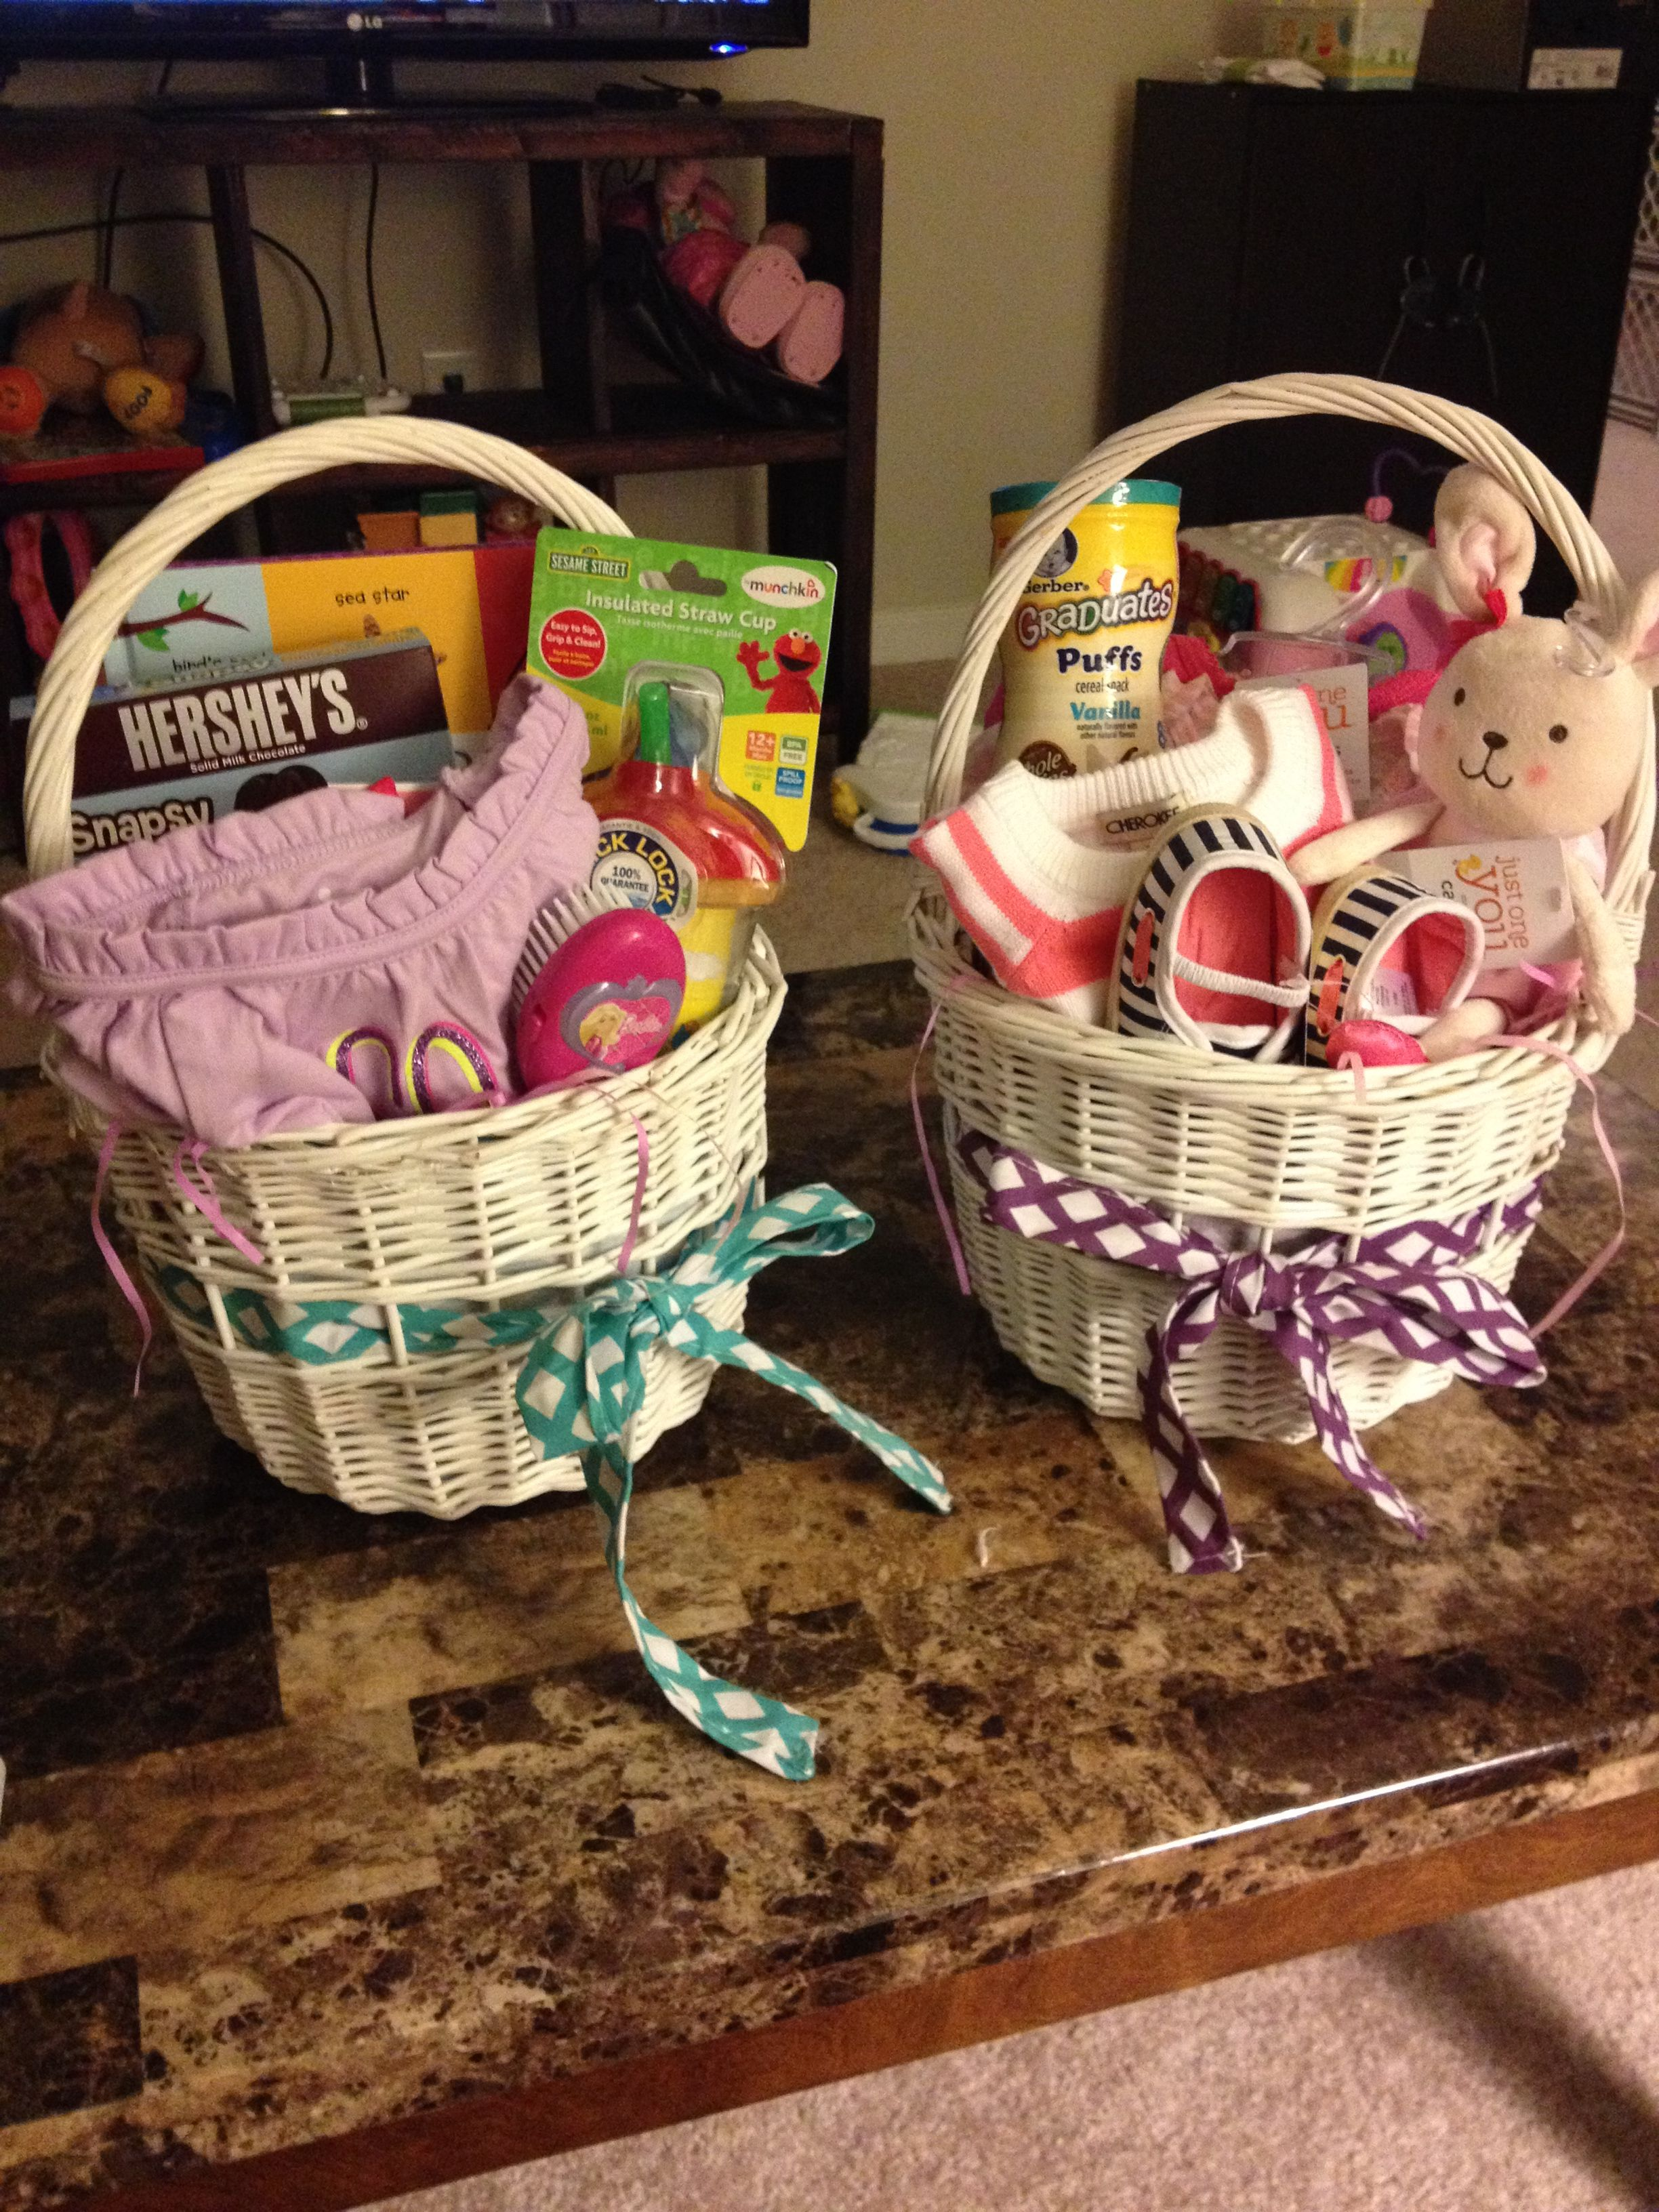 Easter baskets for a 2 year old girl on the left and a 9 month old